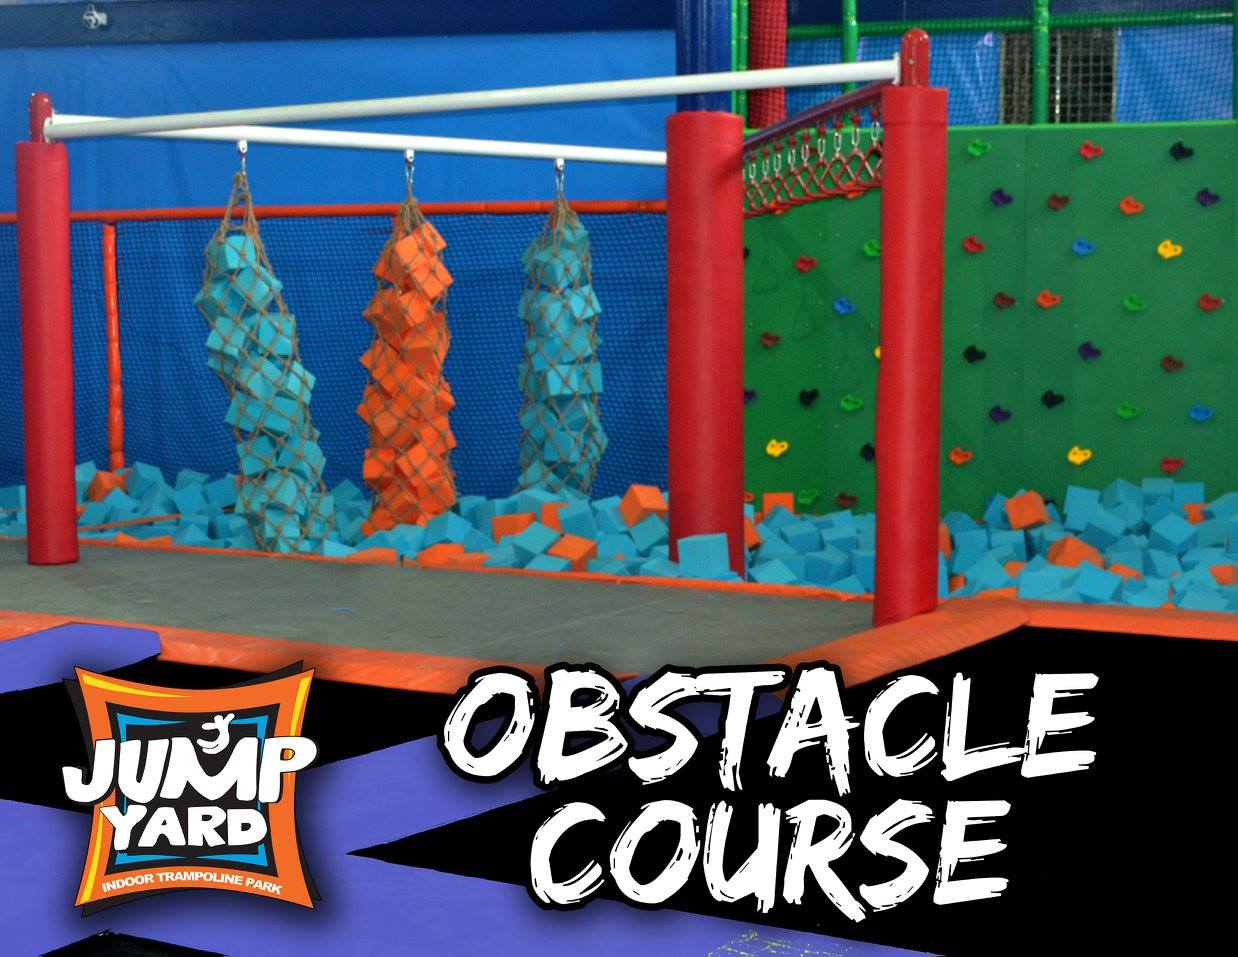 Have fun with friends here at the obstacle course.